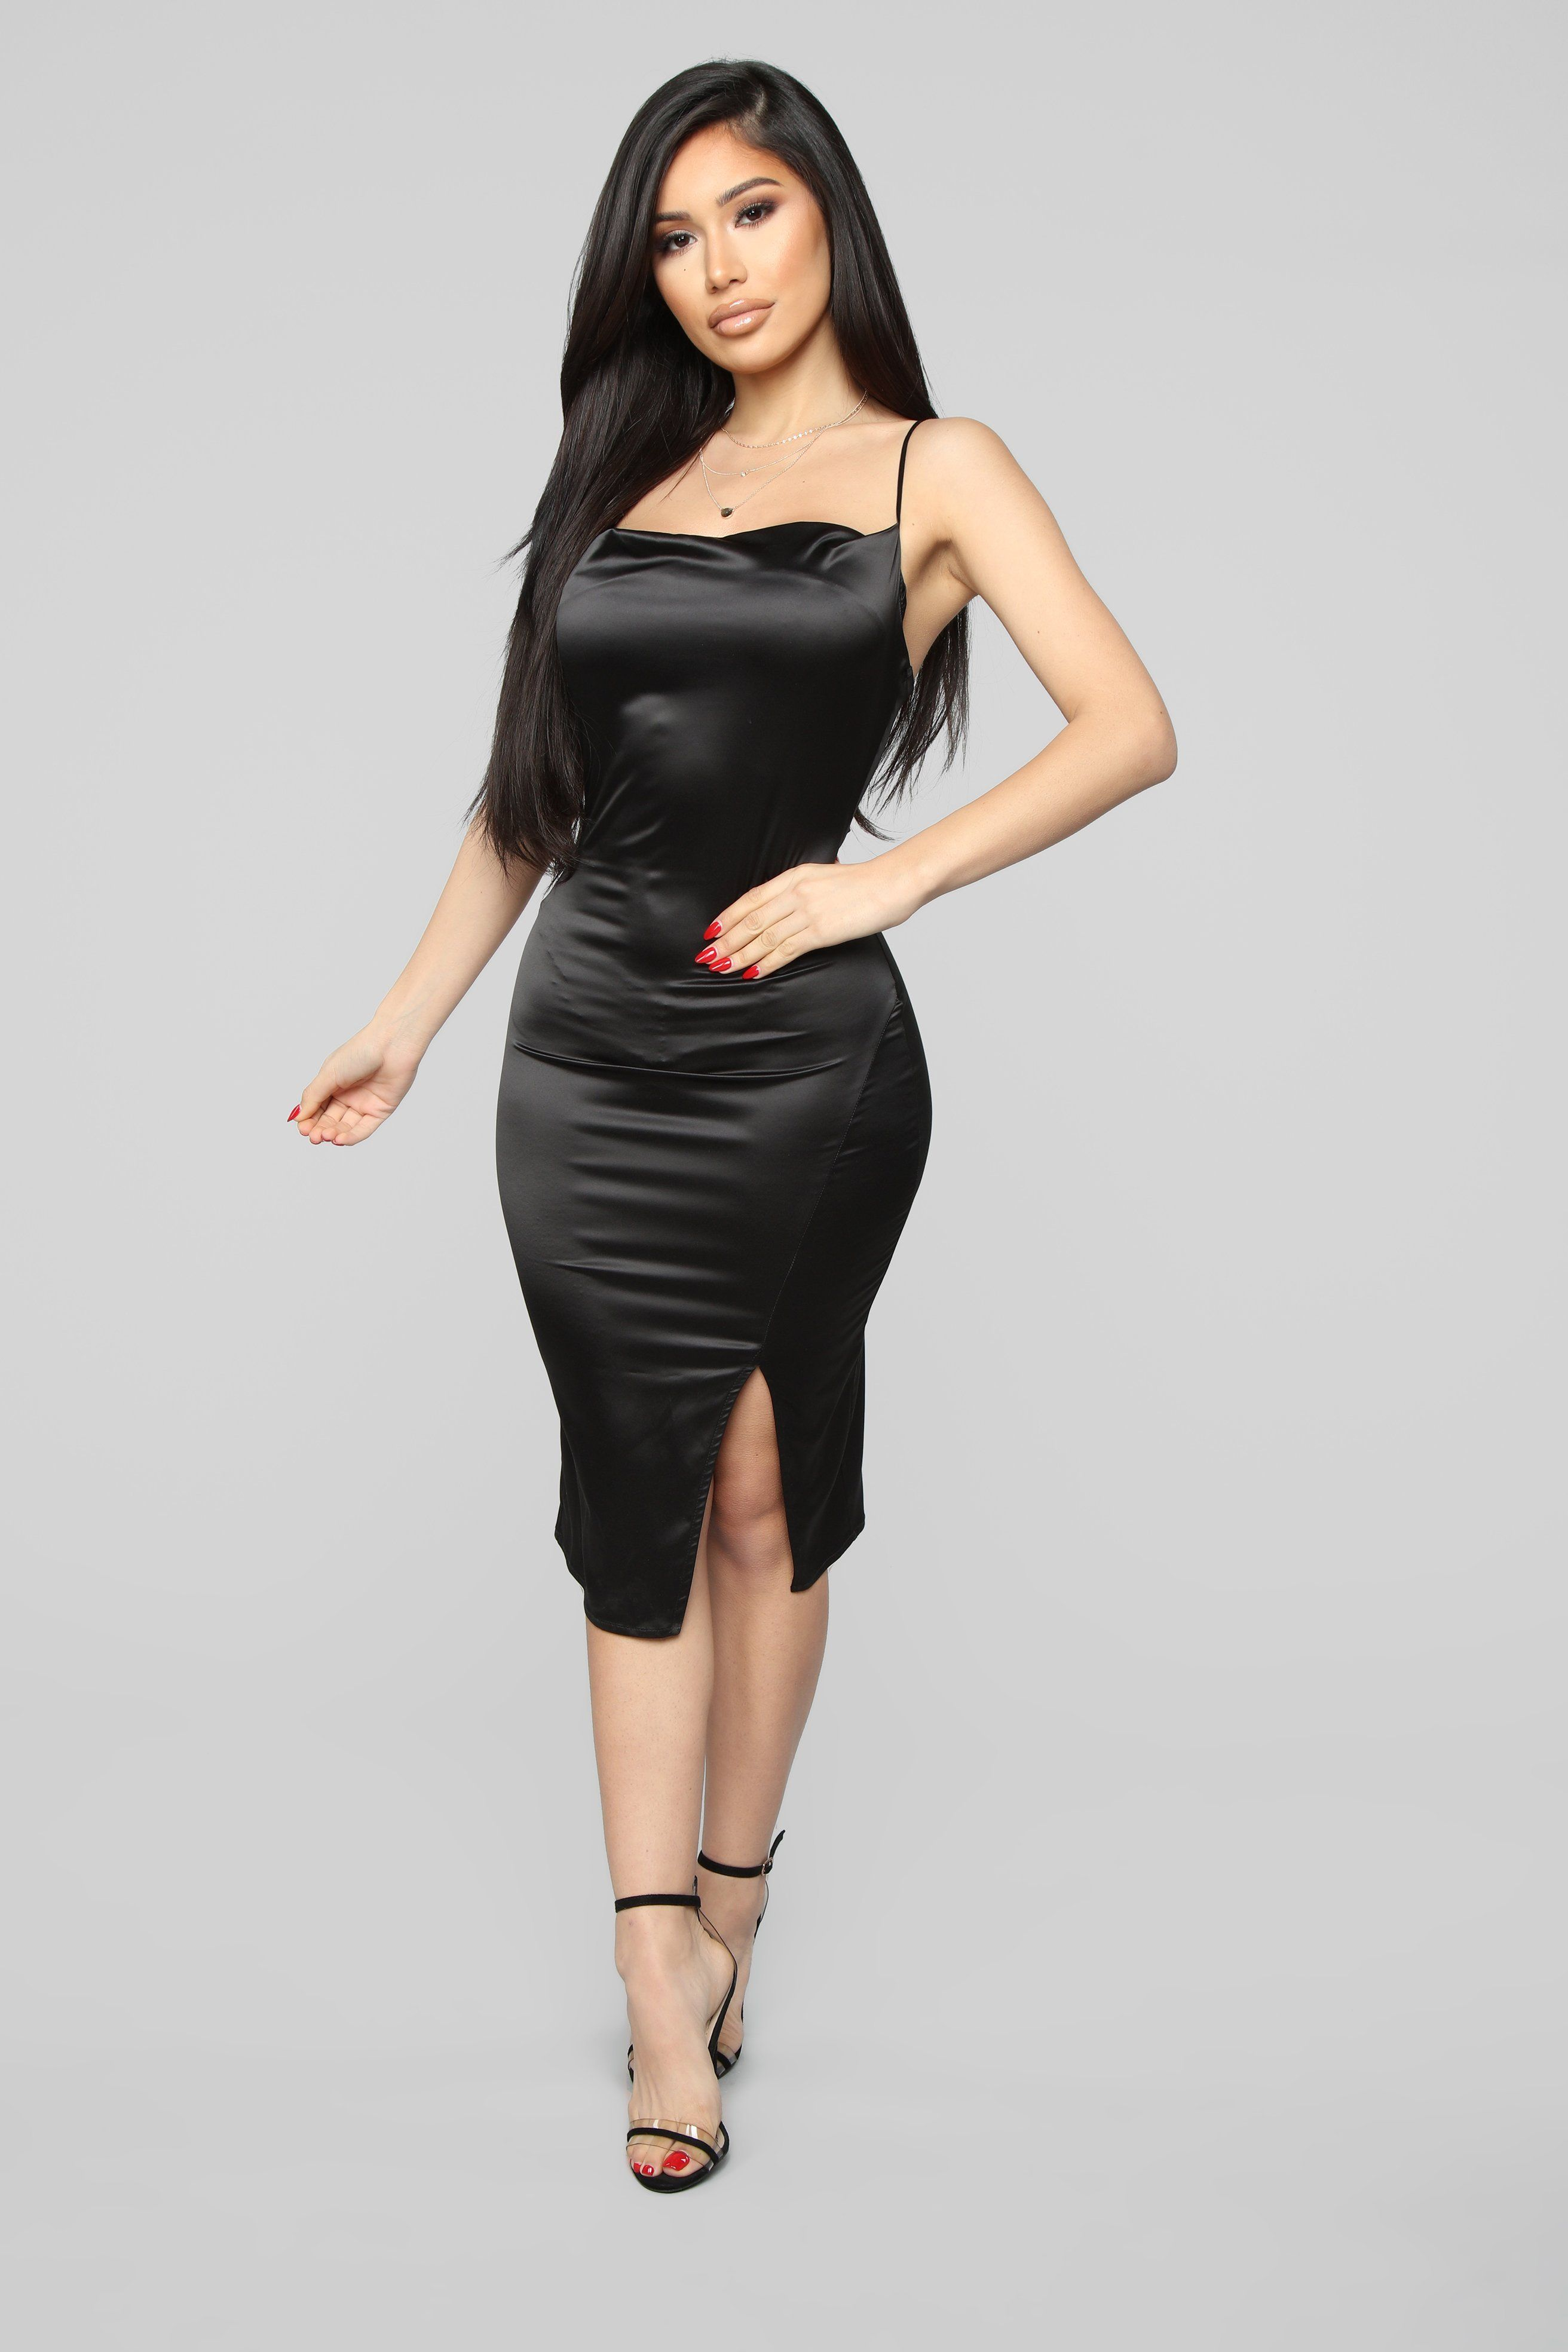 927a50a3803f I Know You See Me Midi Dress - Black in 2019 | hot | Dresses, Black ...